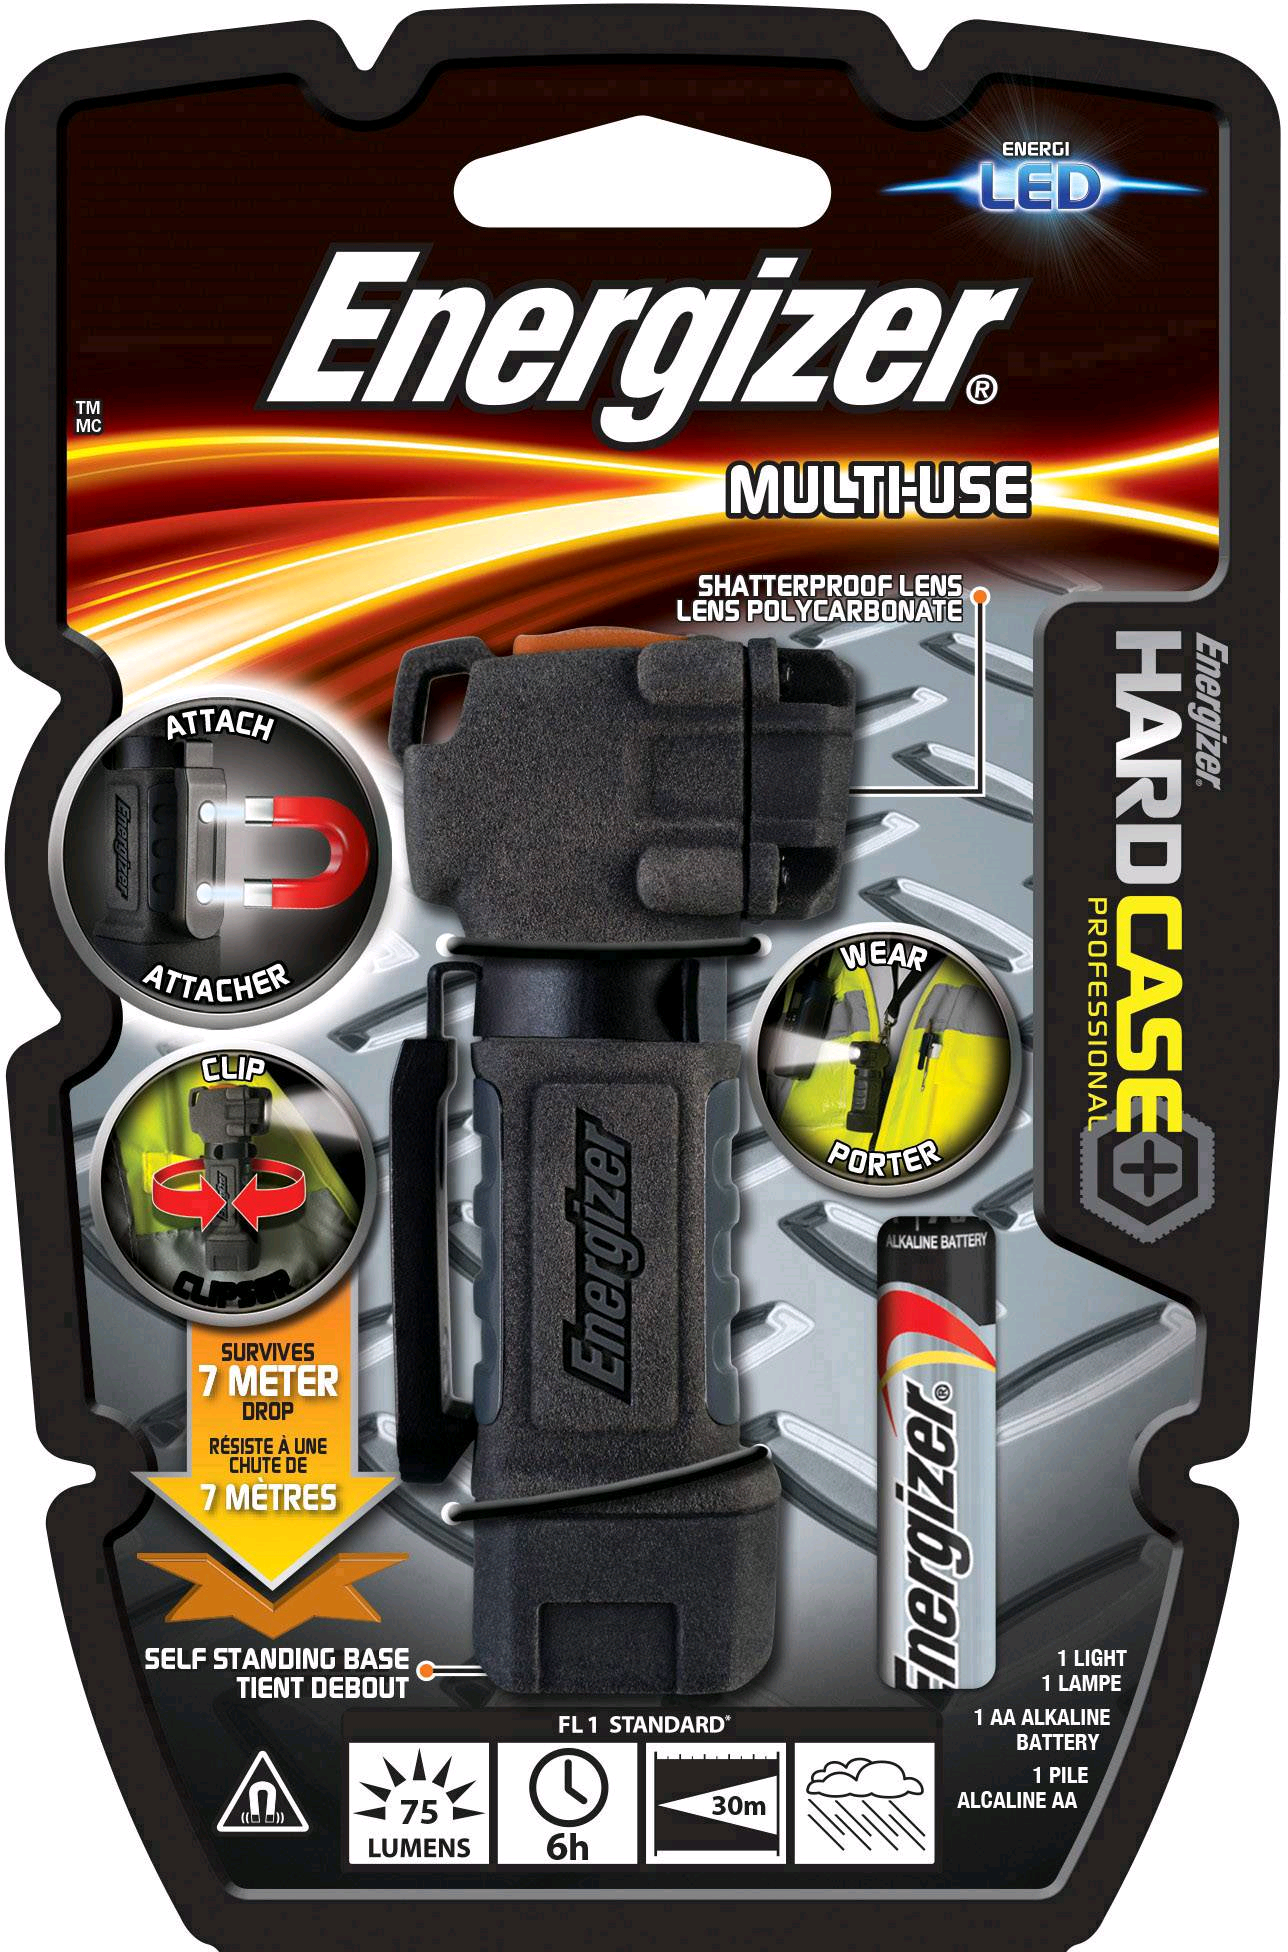 Energizer Hardcase Multiuse Compact Mini-Light S14676